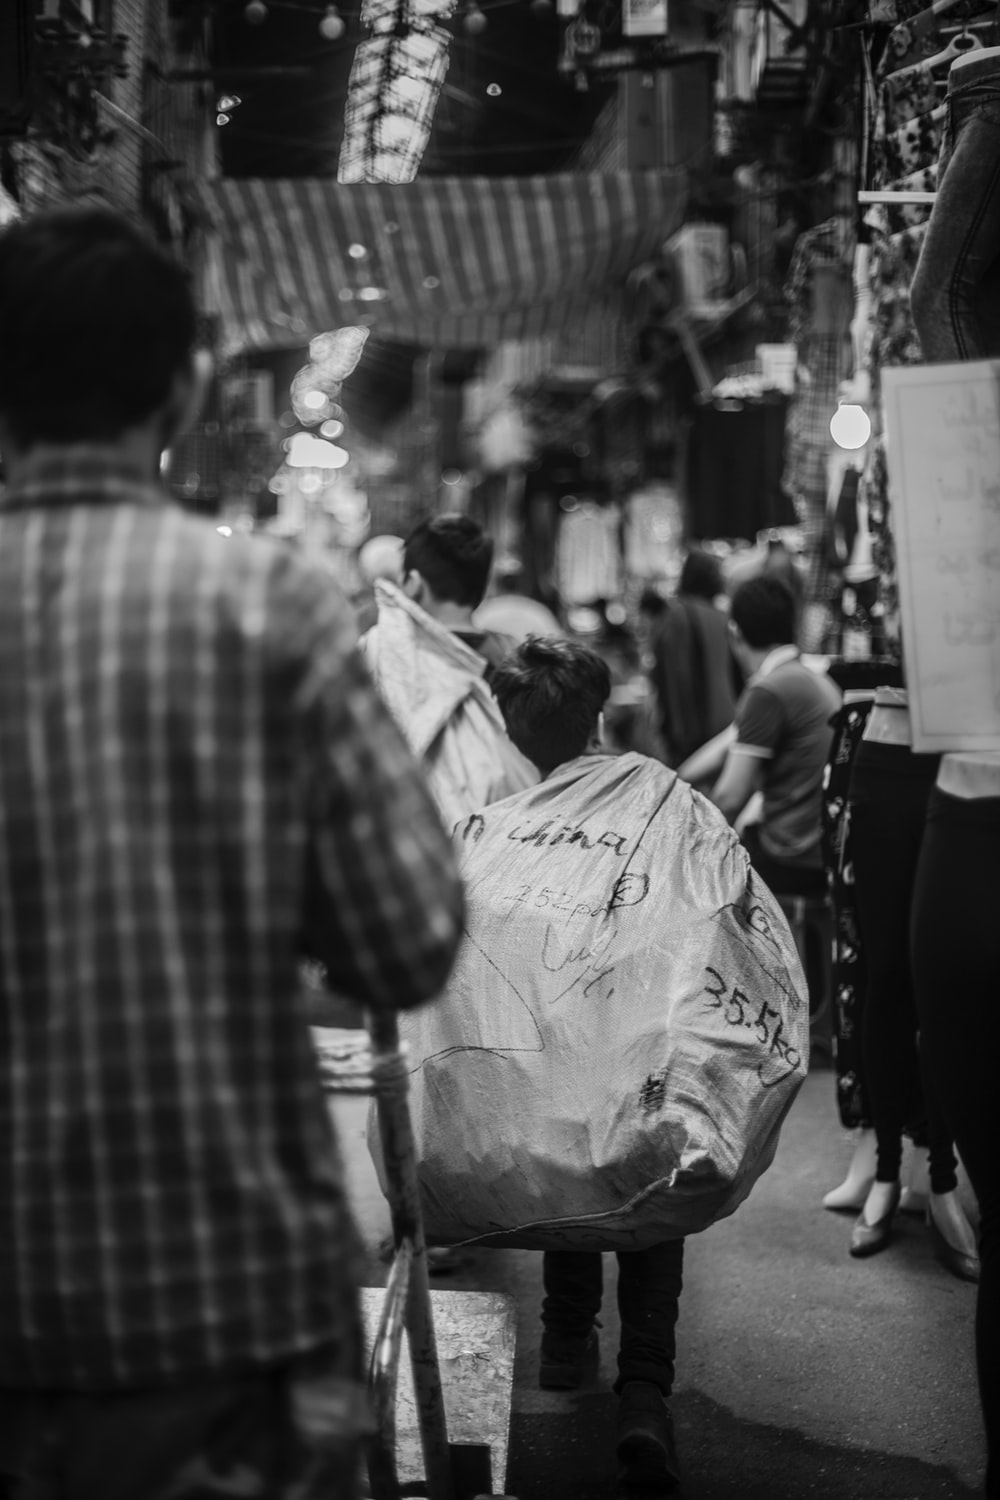 grayscale photography of boy carrying sack while walking